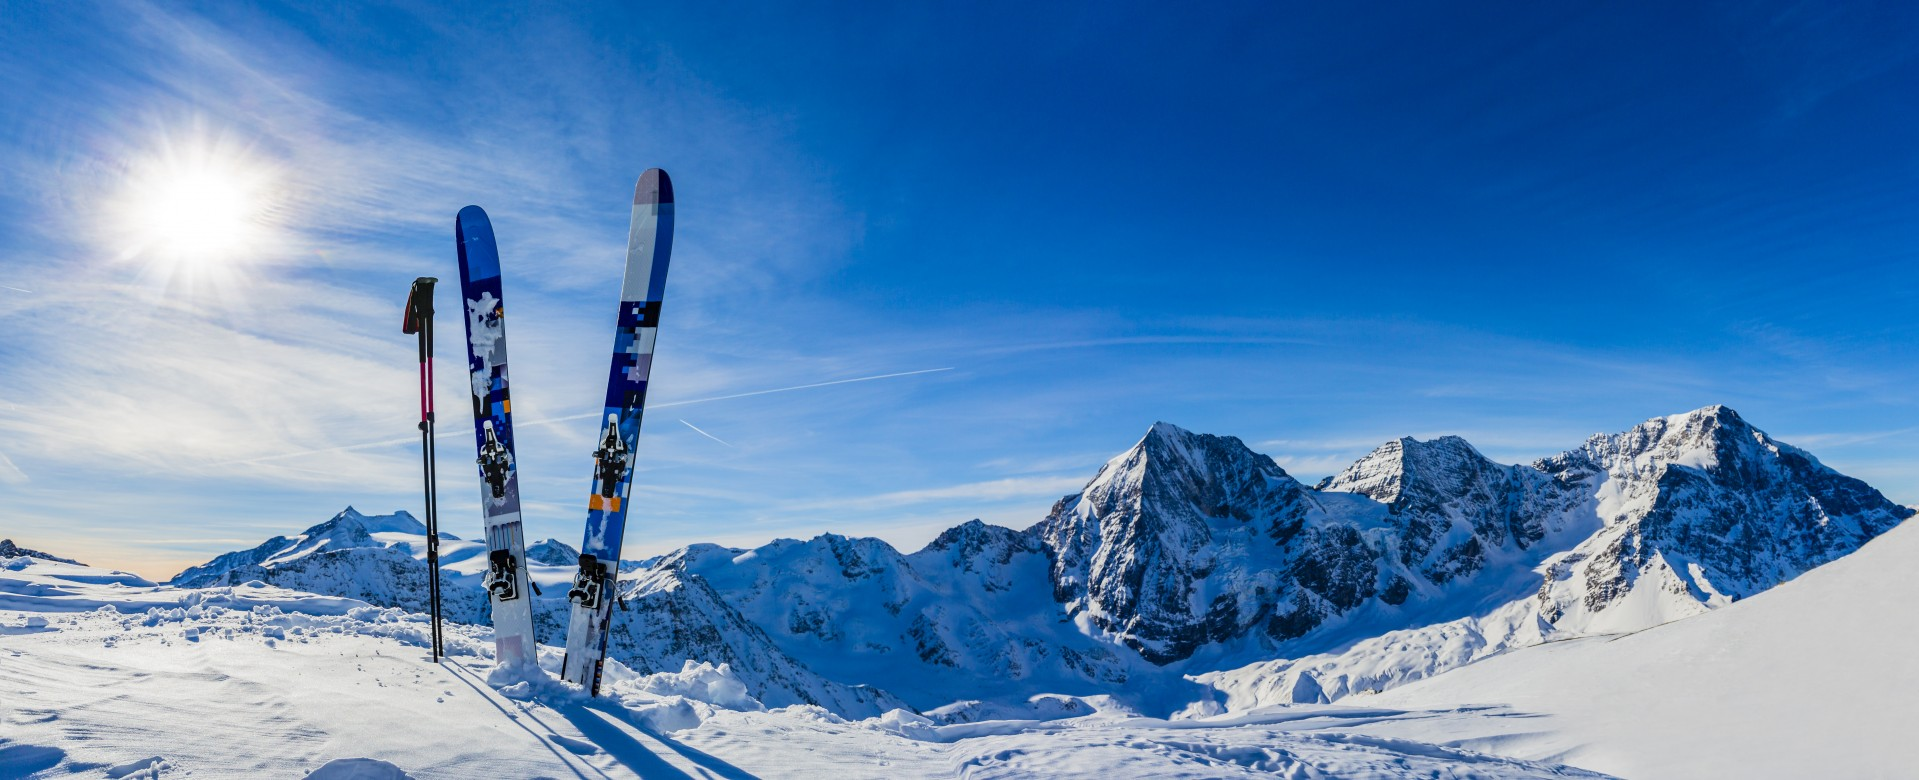 The Most Instagrammable Ski Destinations Snowy Mountains